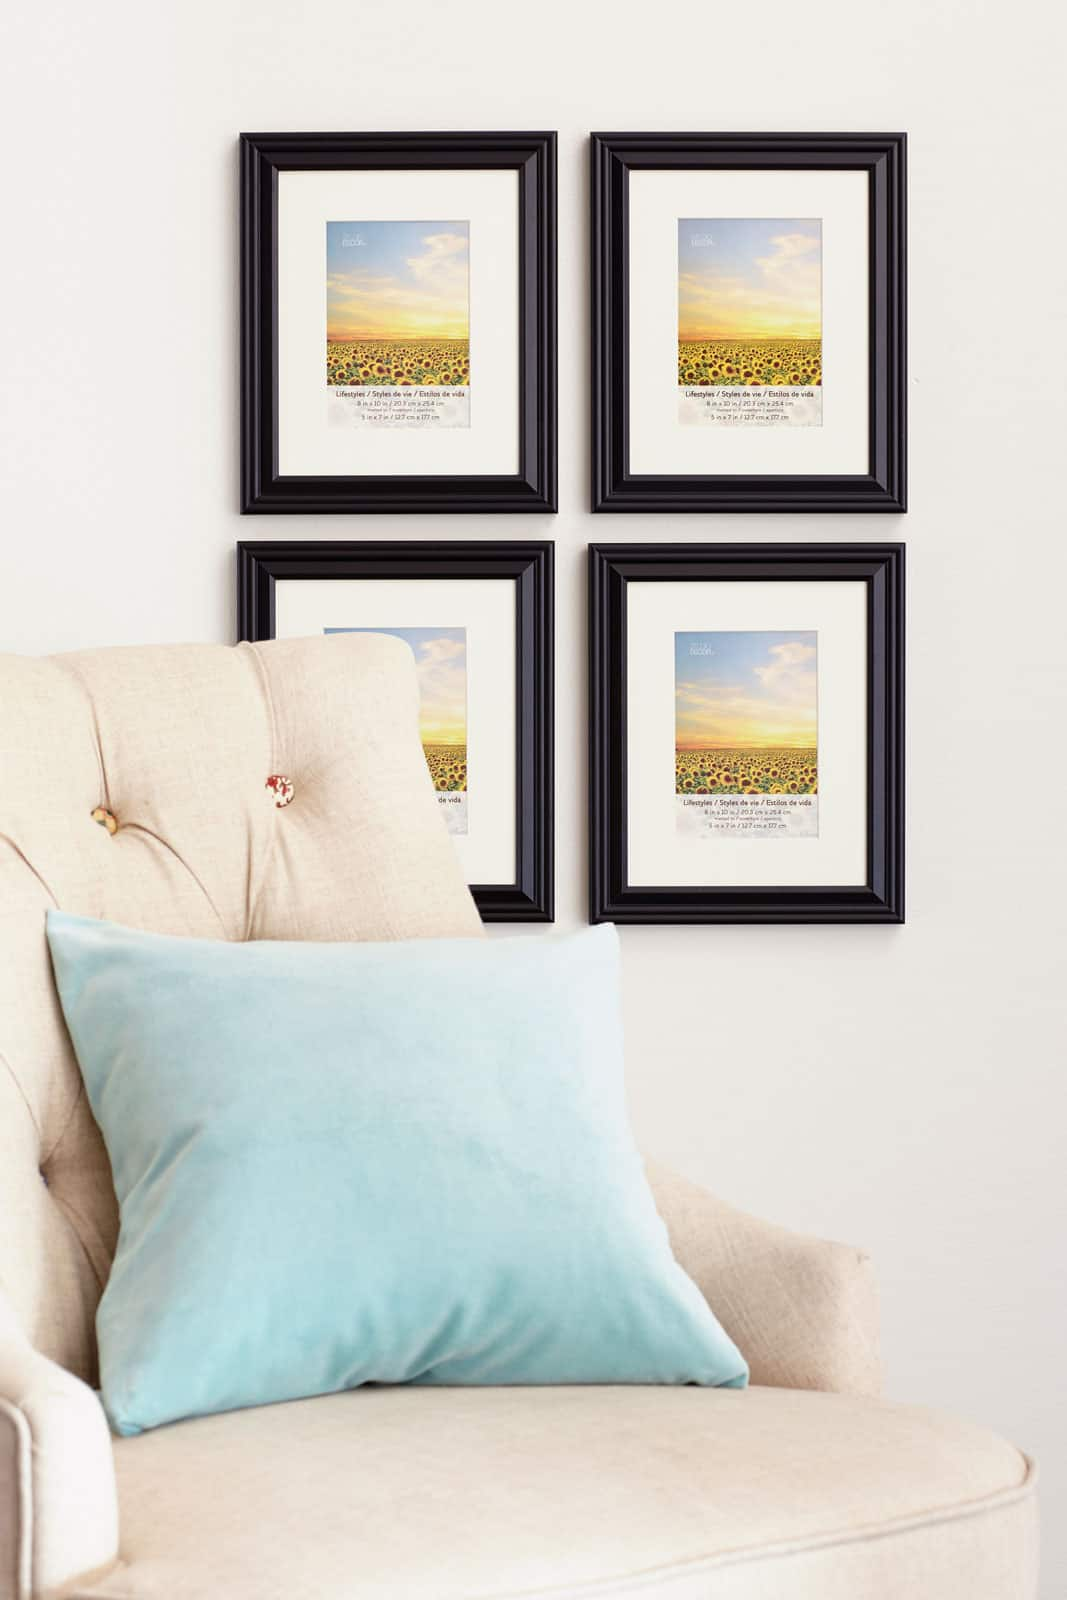 8 packs 4 ct 32 total black 5 x 7 frame with mat lifestyles by studio decor